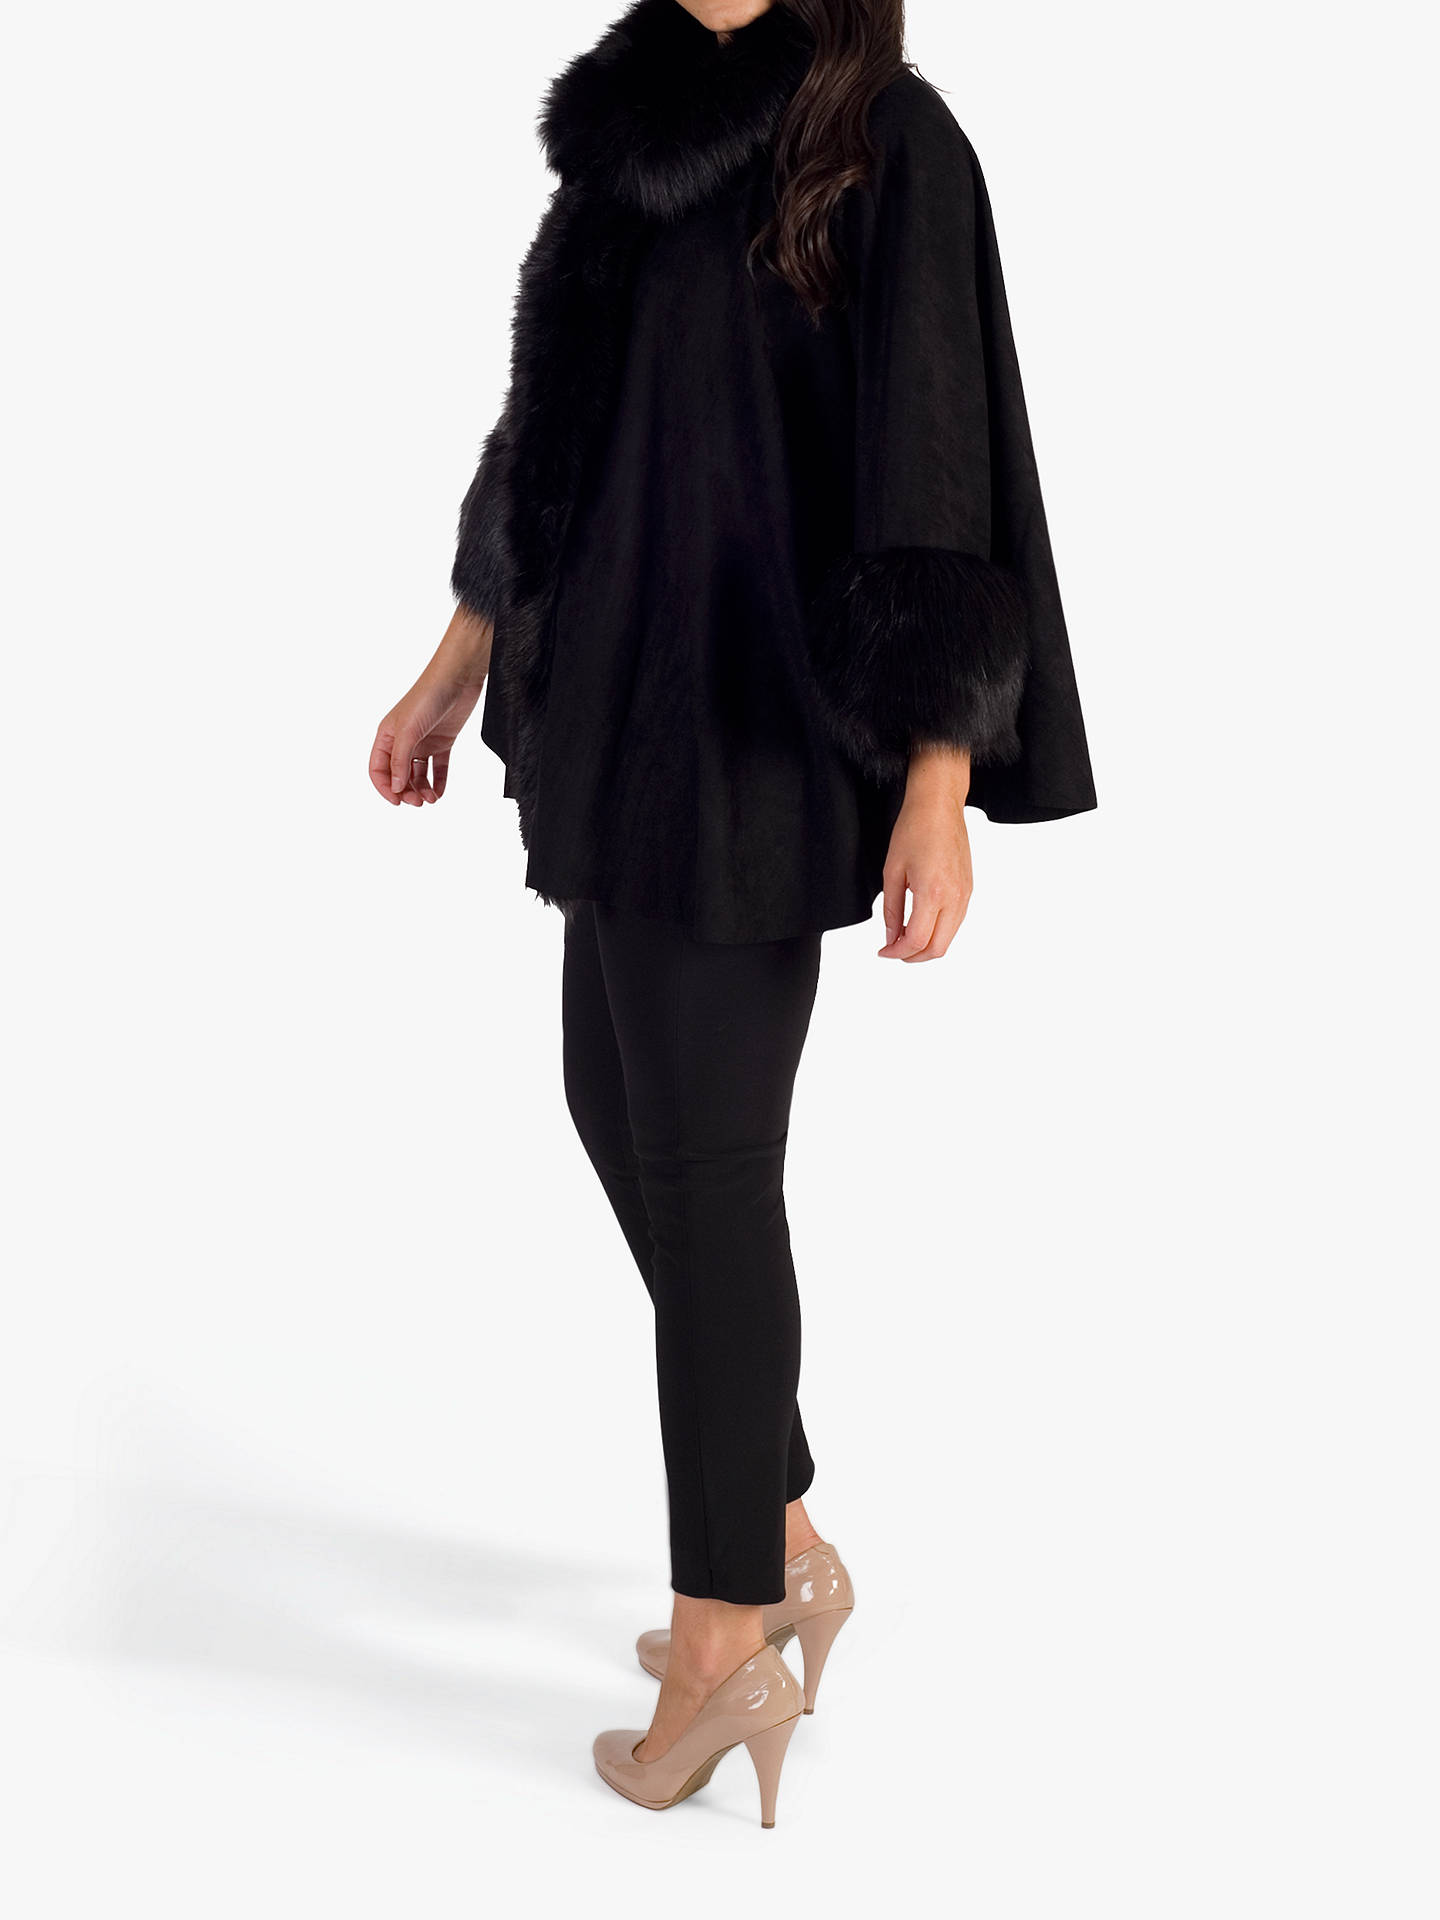 BuyChesca Faux Fur Trim Cape, Black, One Size Online at johnlewis.com